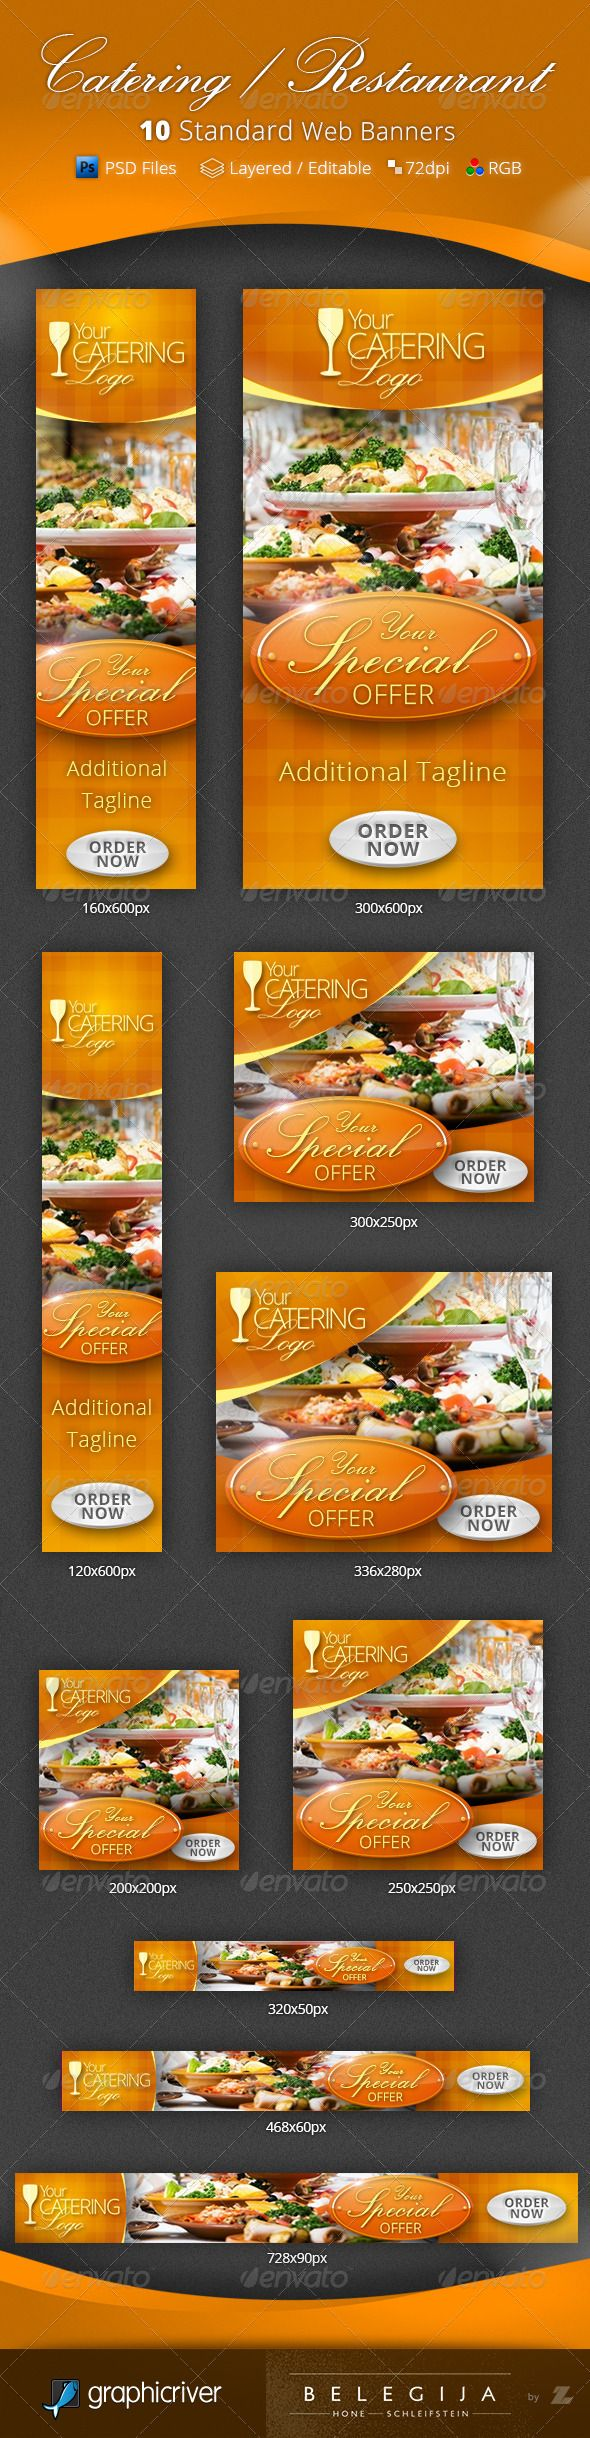 Catering Restaurant Web Banners